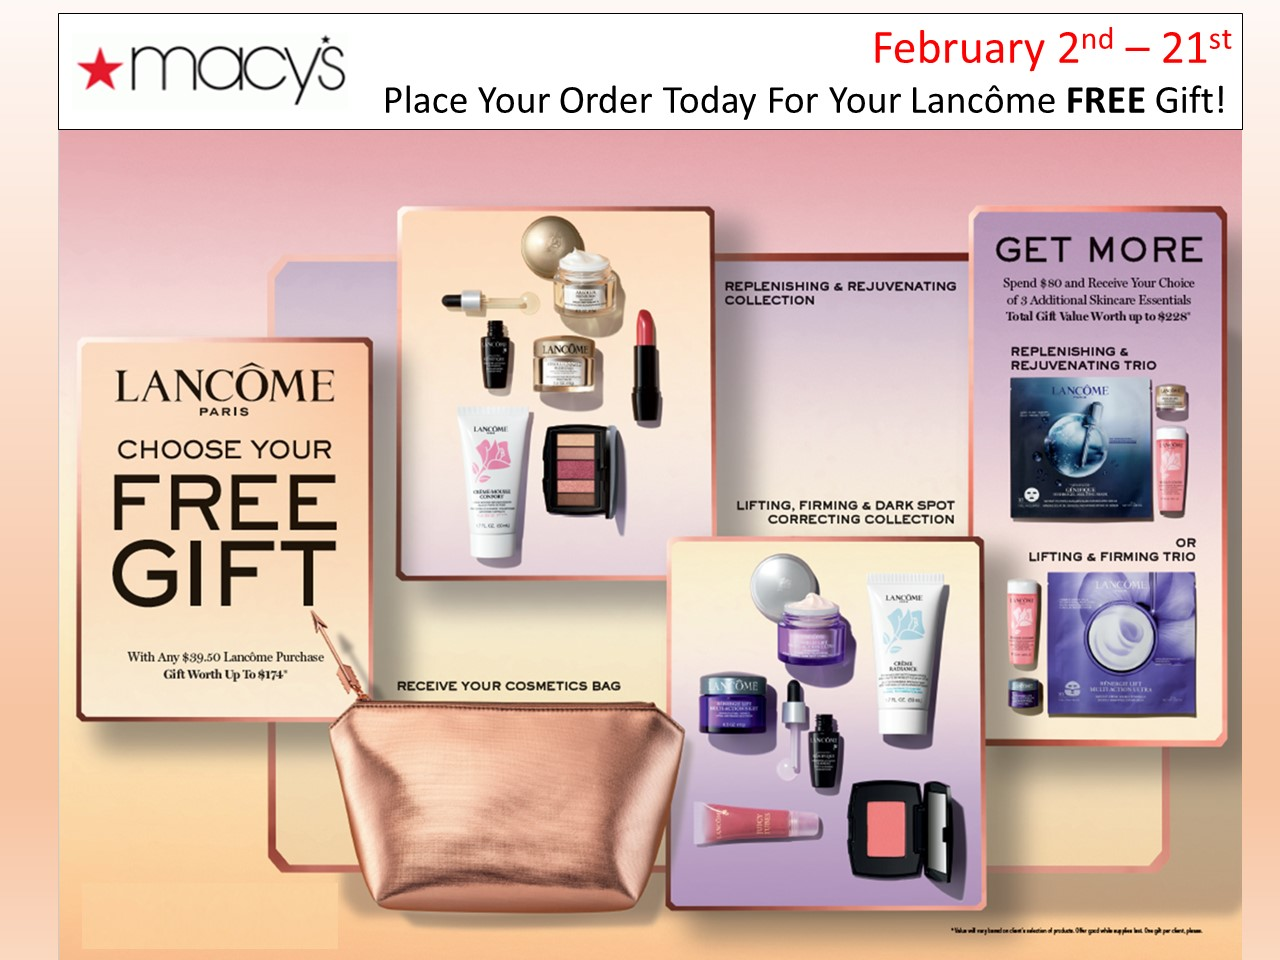 Choose your free gift from macy's